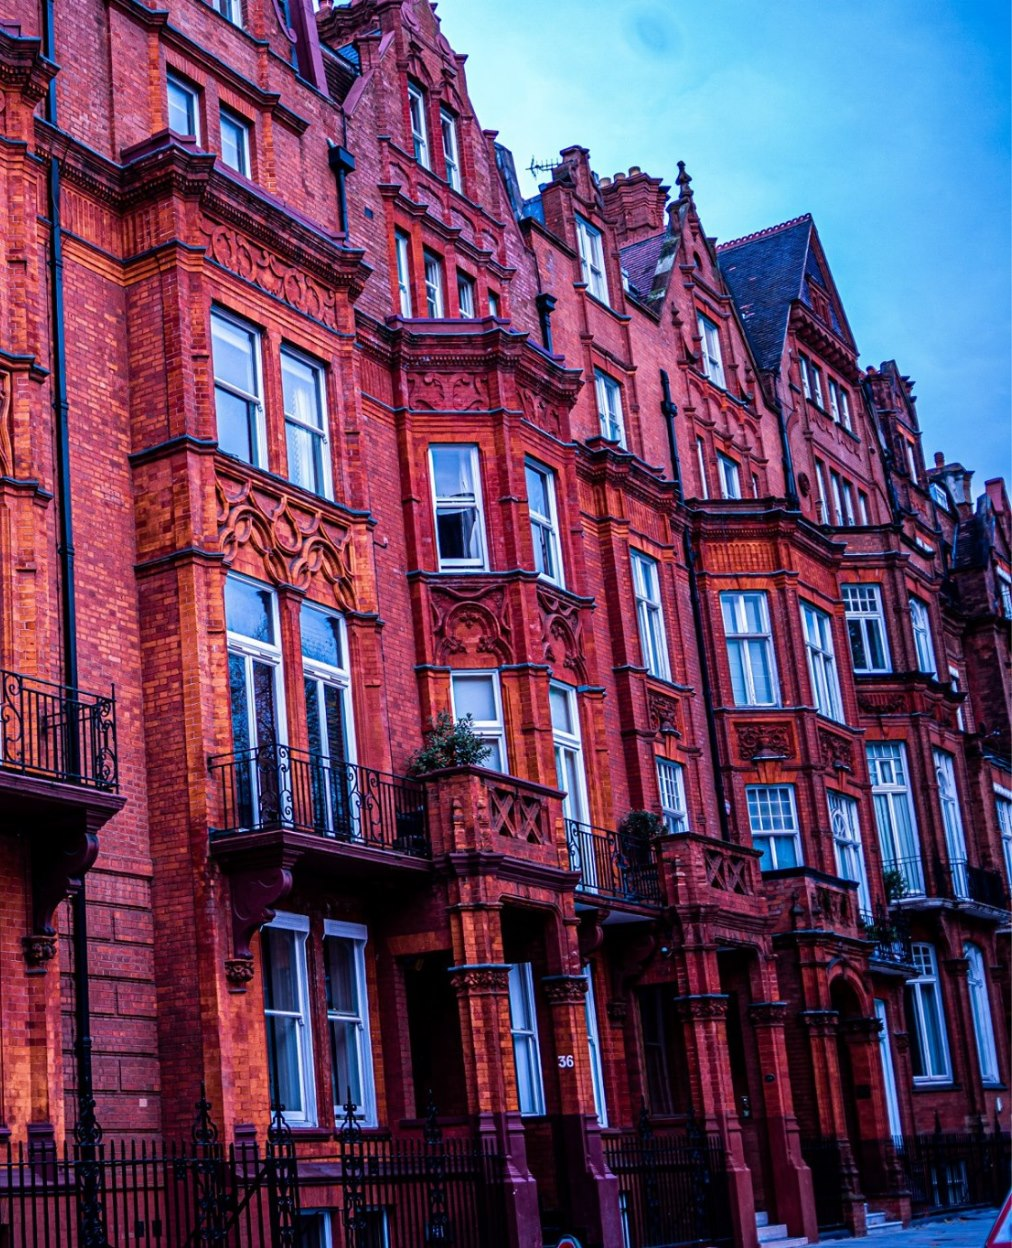 Right to Manage enables leaseholders to take control over the management of their building